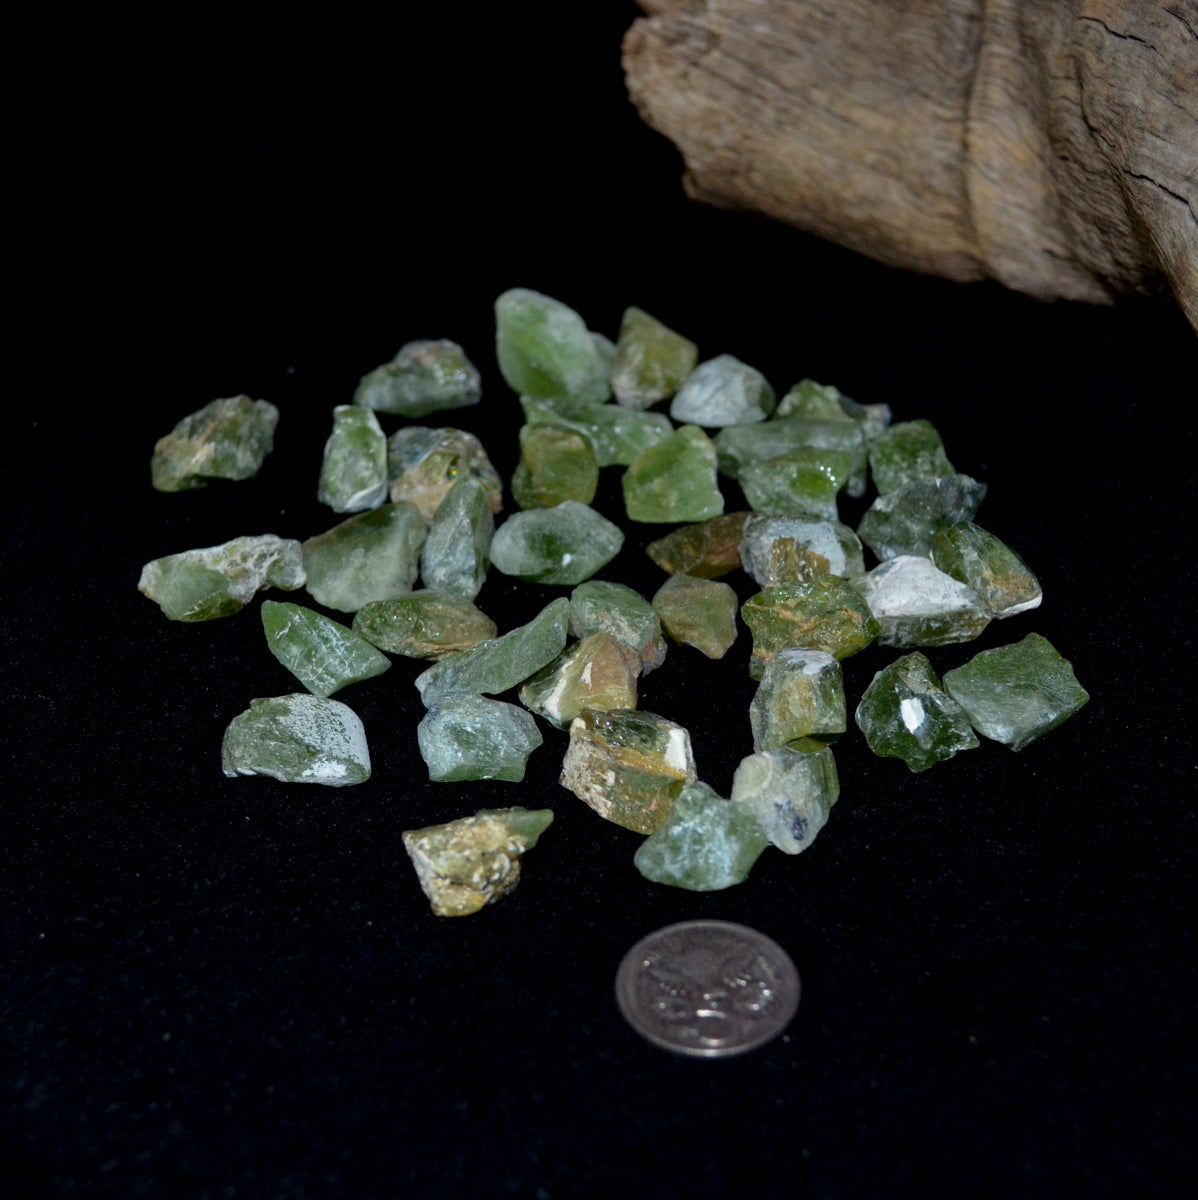 Peridot Natural Crystals - Positive Relationships Understanding Abundance - Shop Now at Illiom Crystals - Afterpay Available